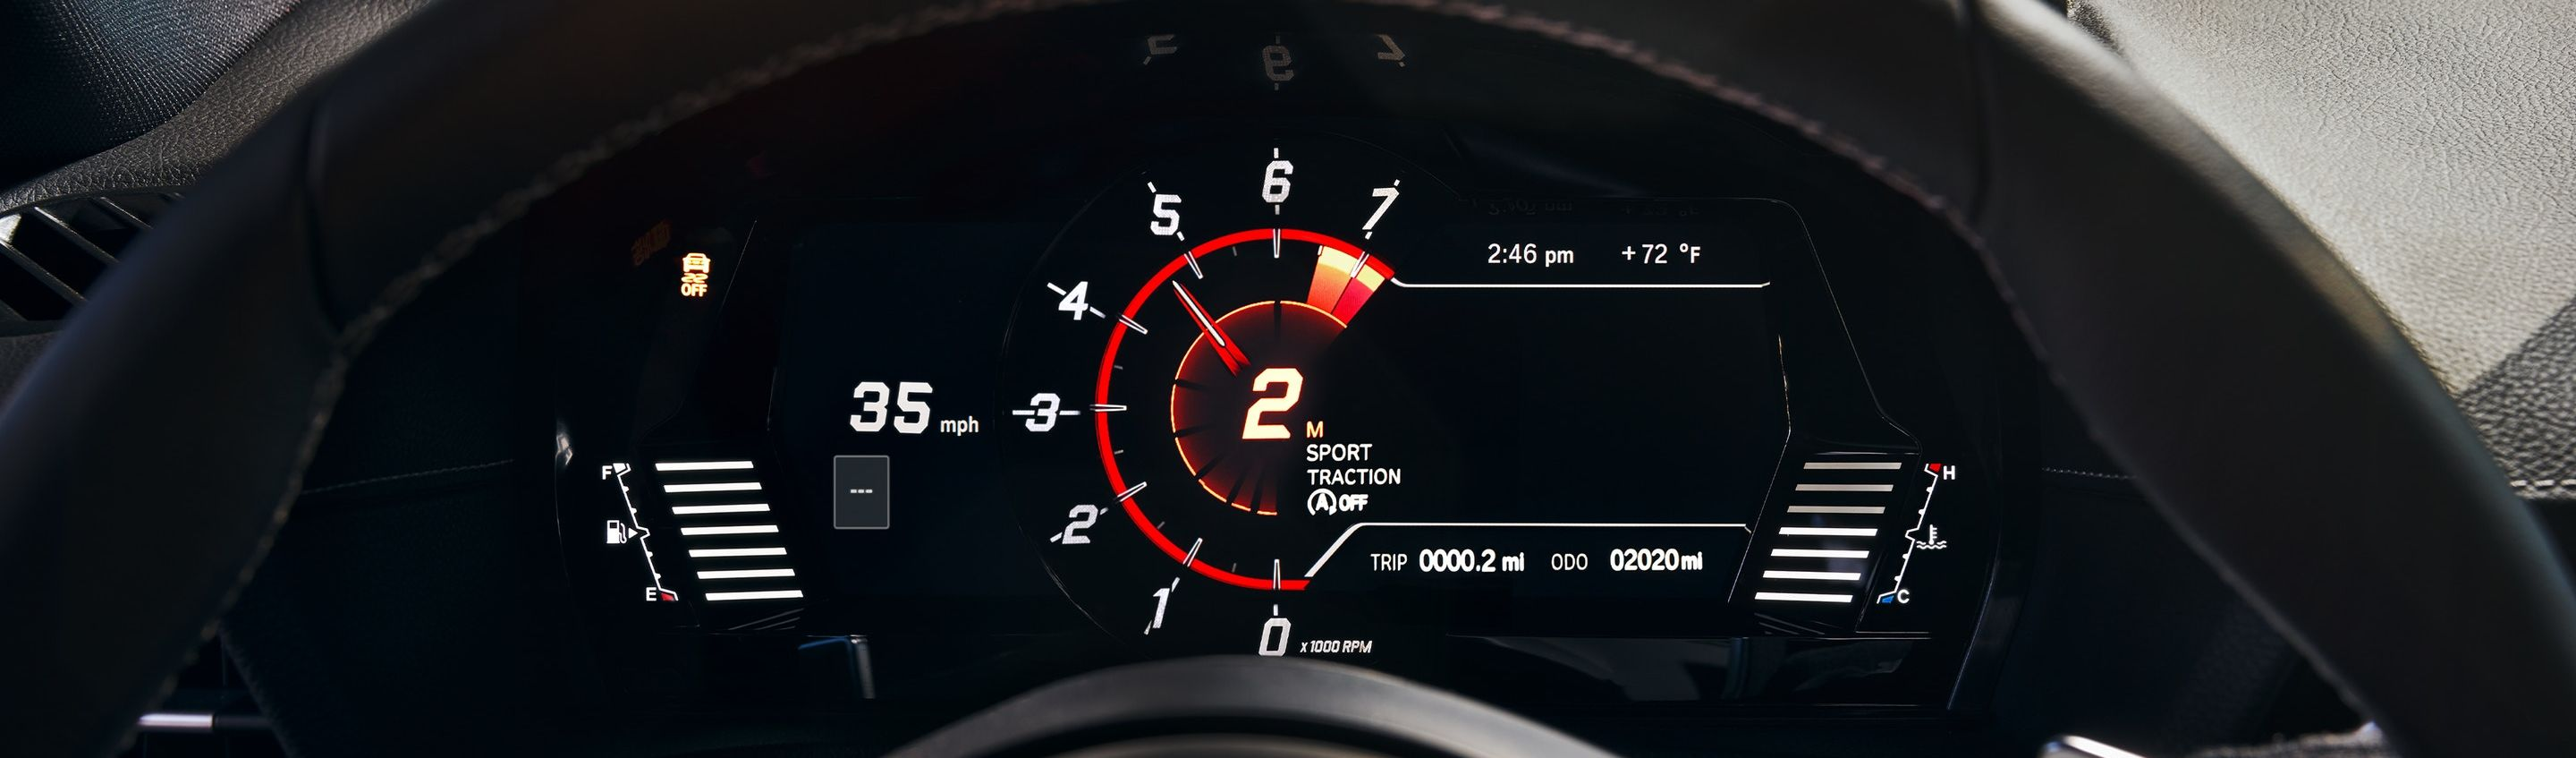 Instrument Cluster in the 2020 Supra